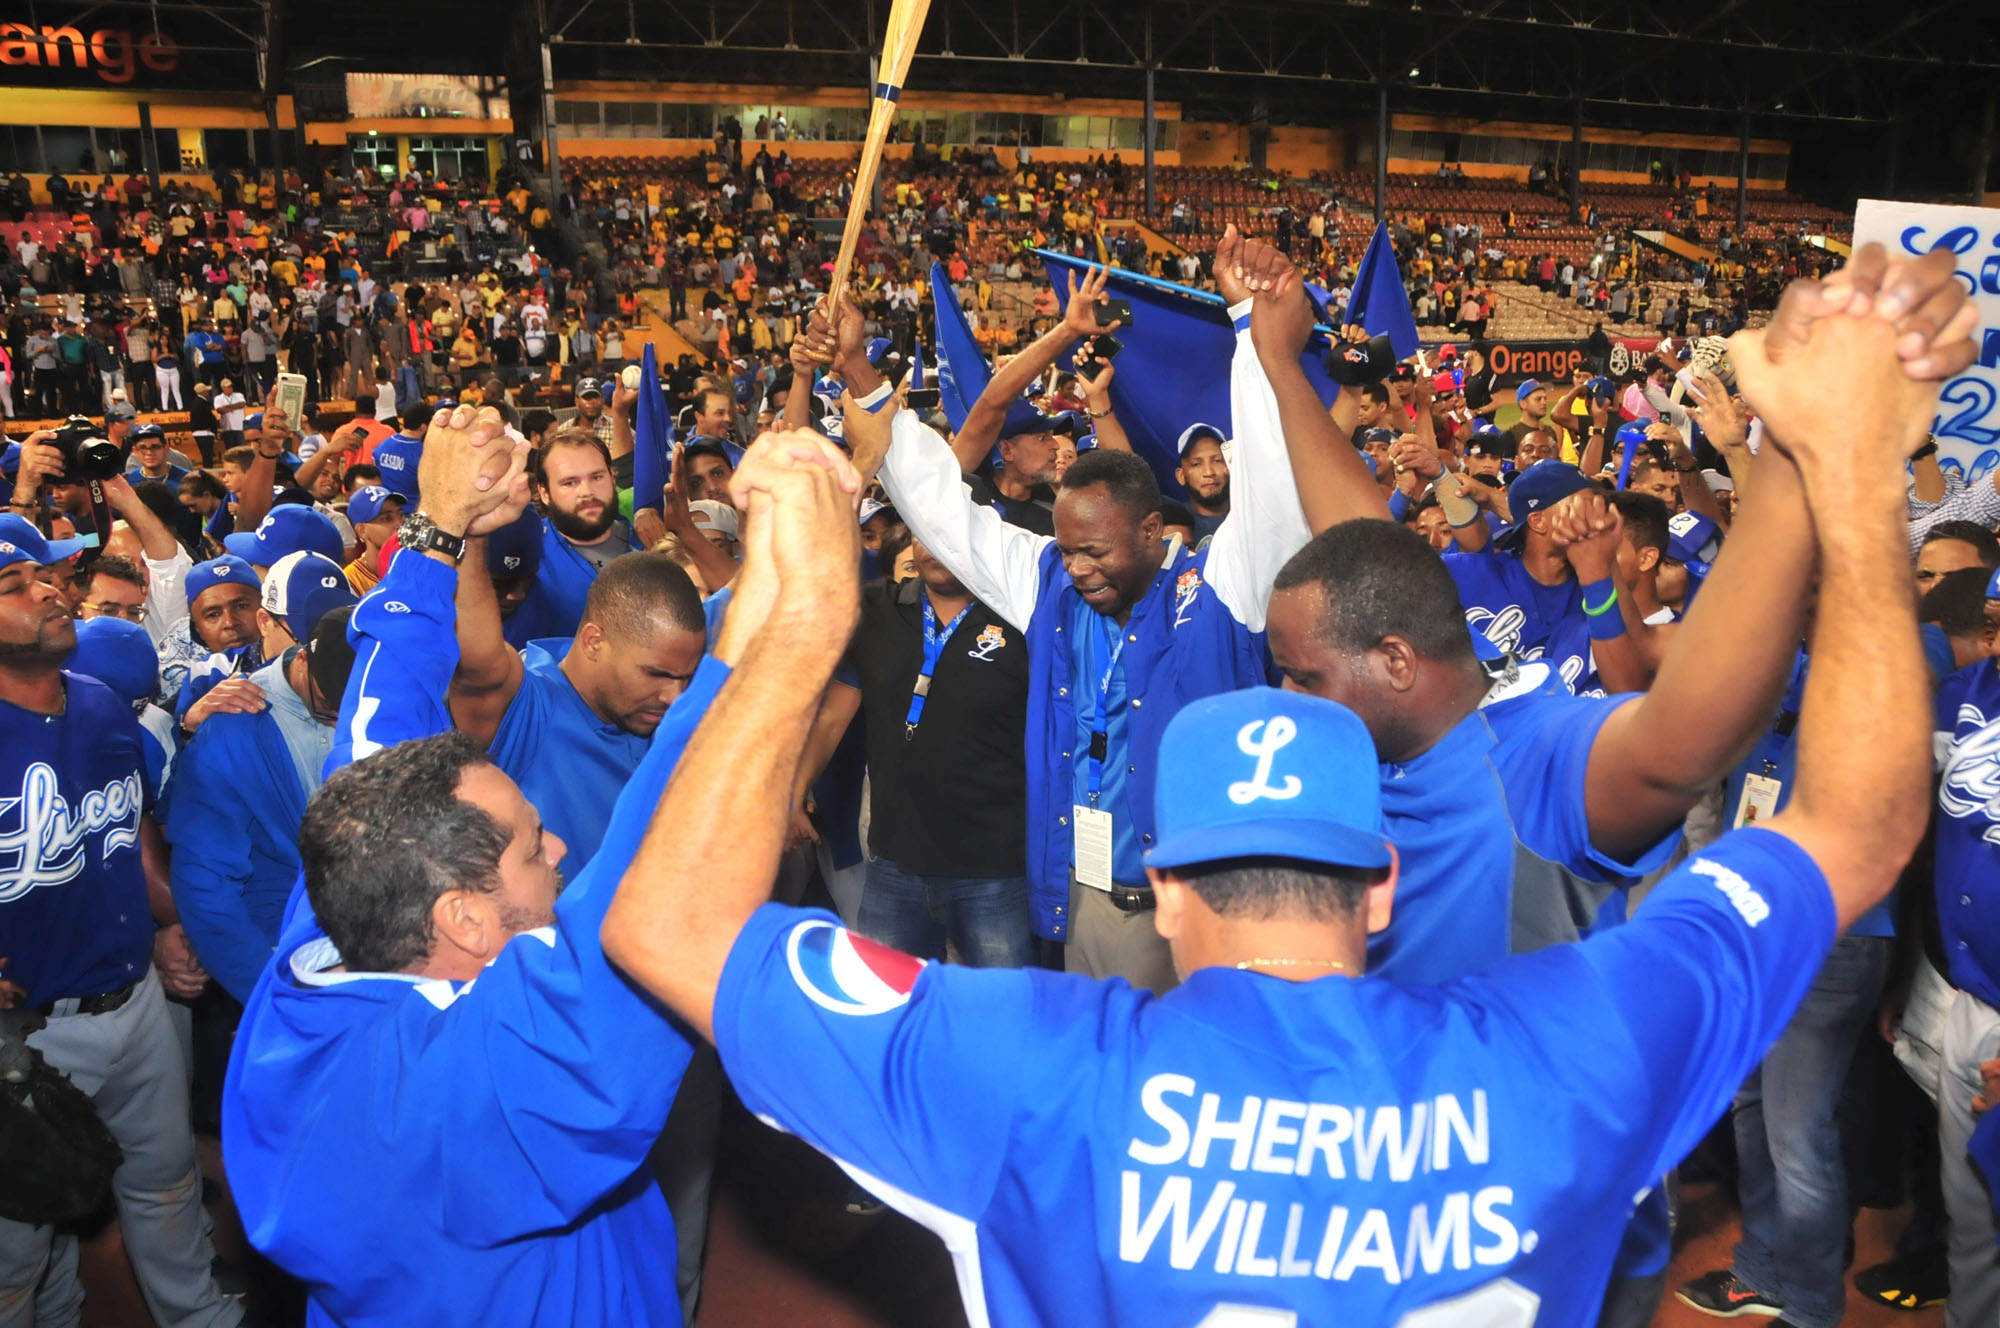 LICEY CAMPEON 4